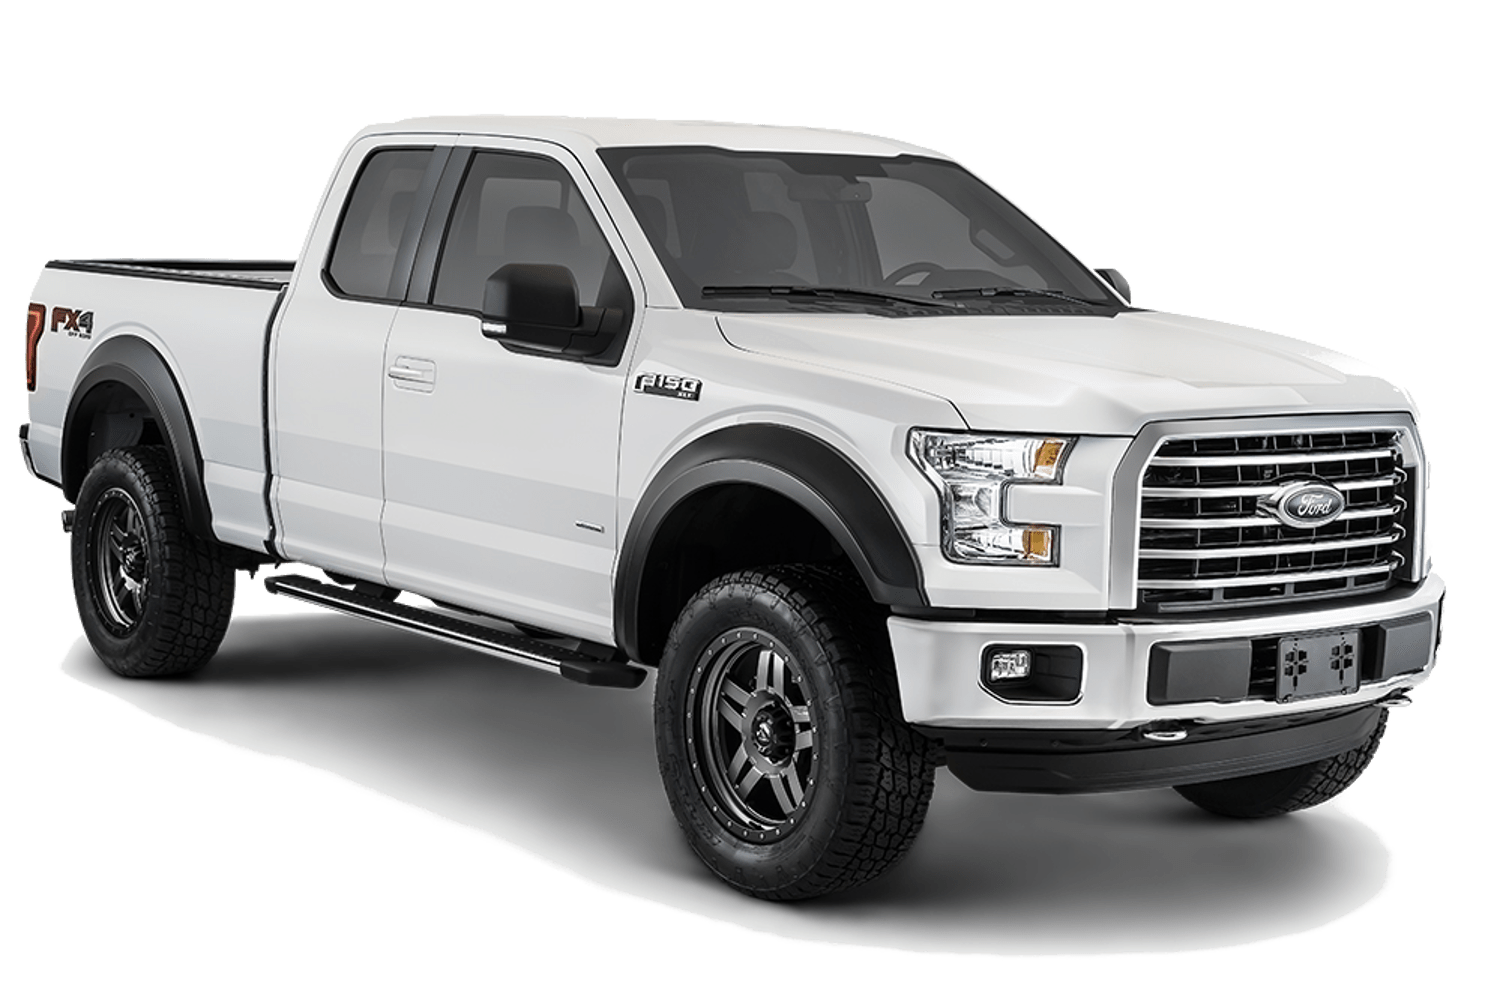 Bushwacker extend-a-fender fender flares shown installed on a Ford F150.